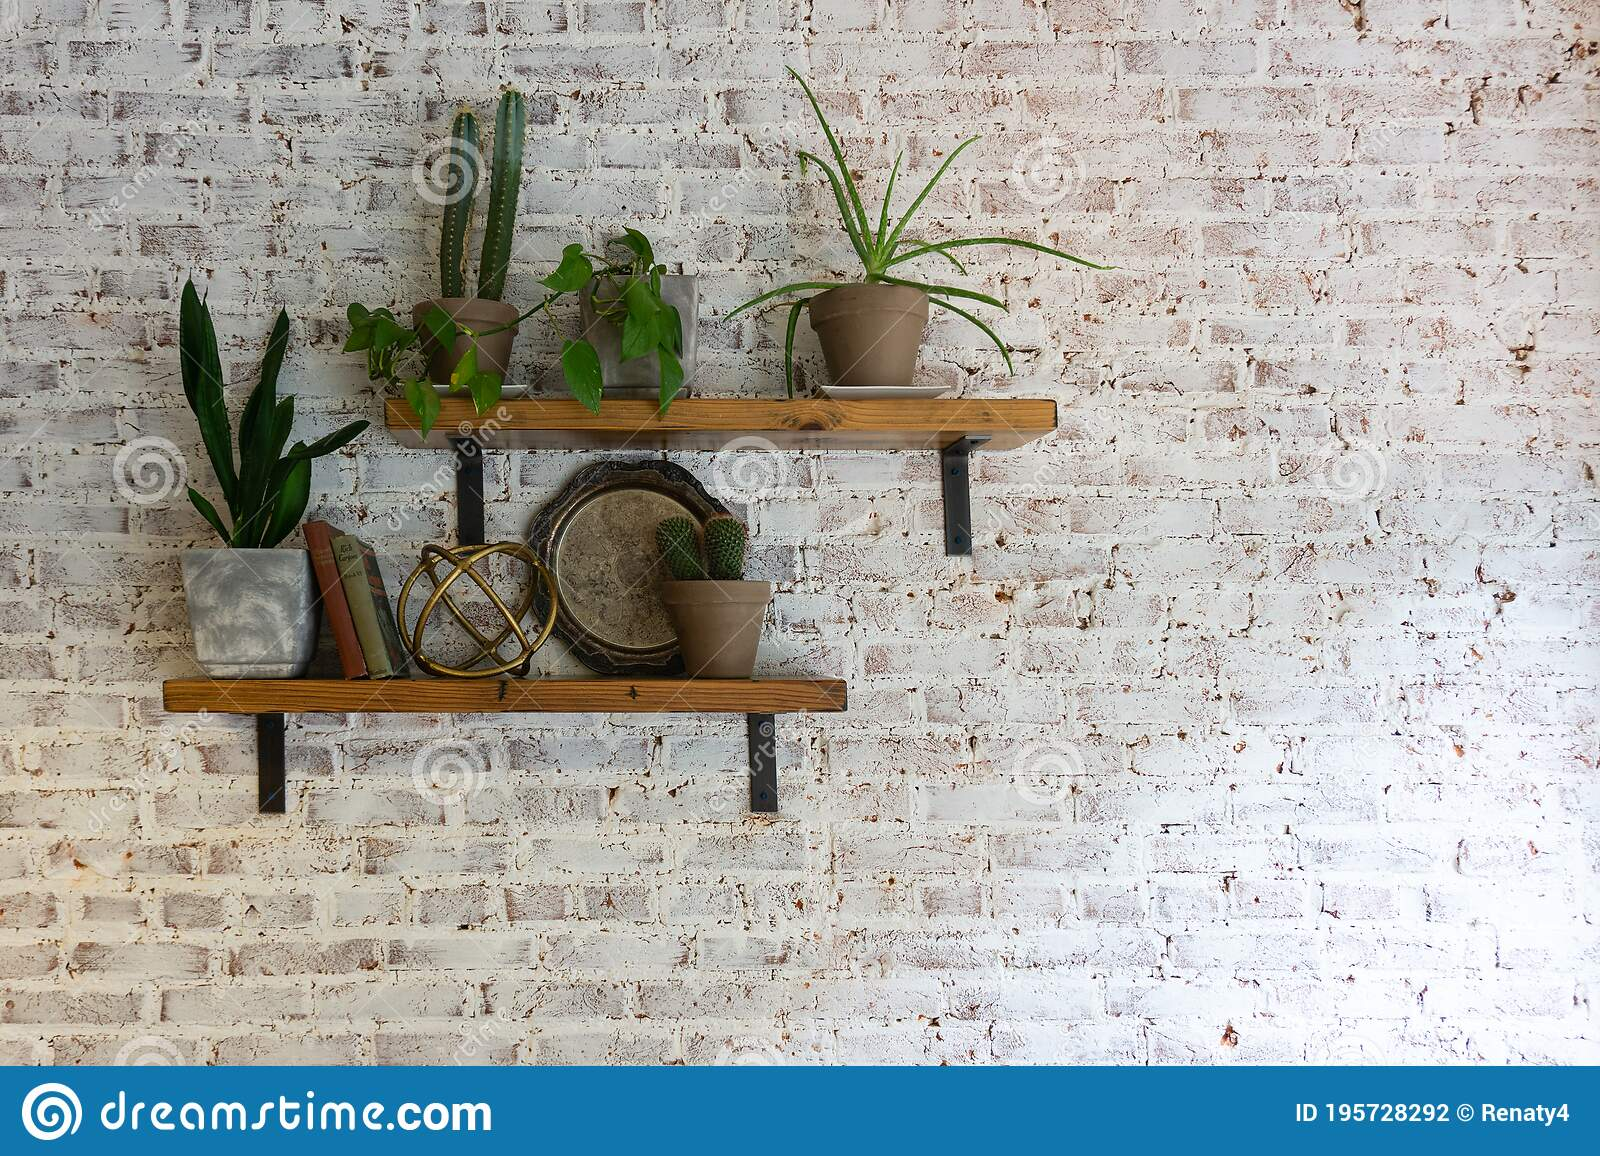 Modern Stylish White Brick Wall With Shelves And Plants On Them Stock Photo Image Of Brick Copy 195728292